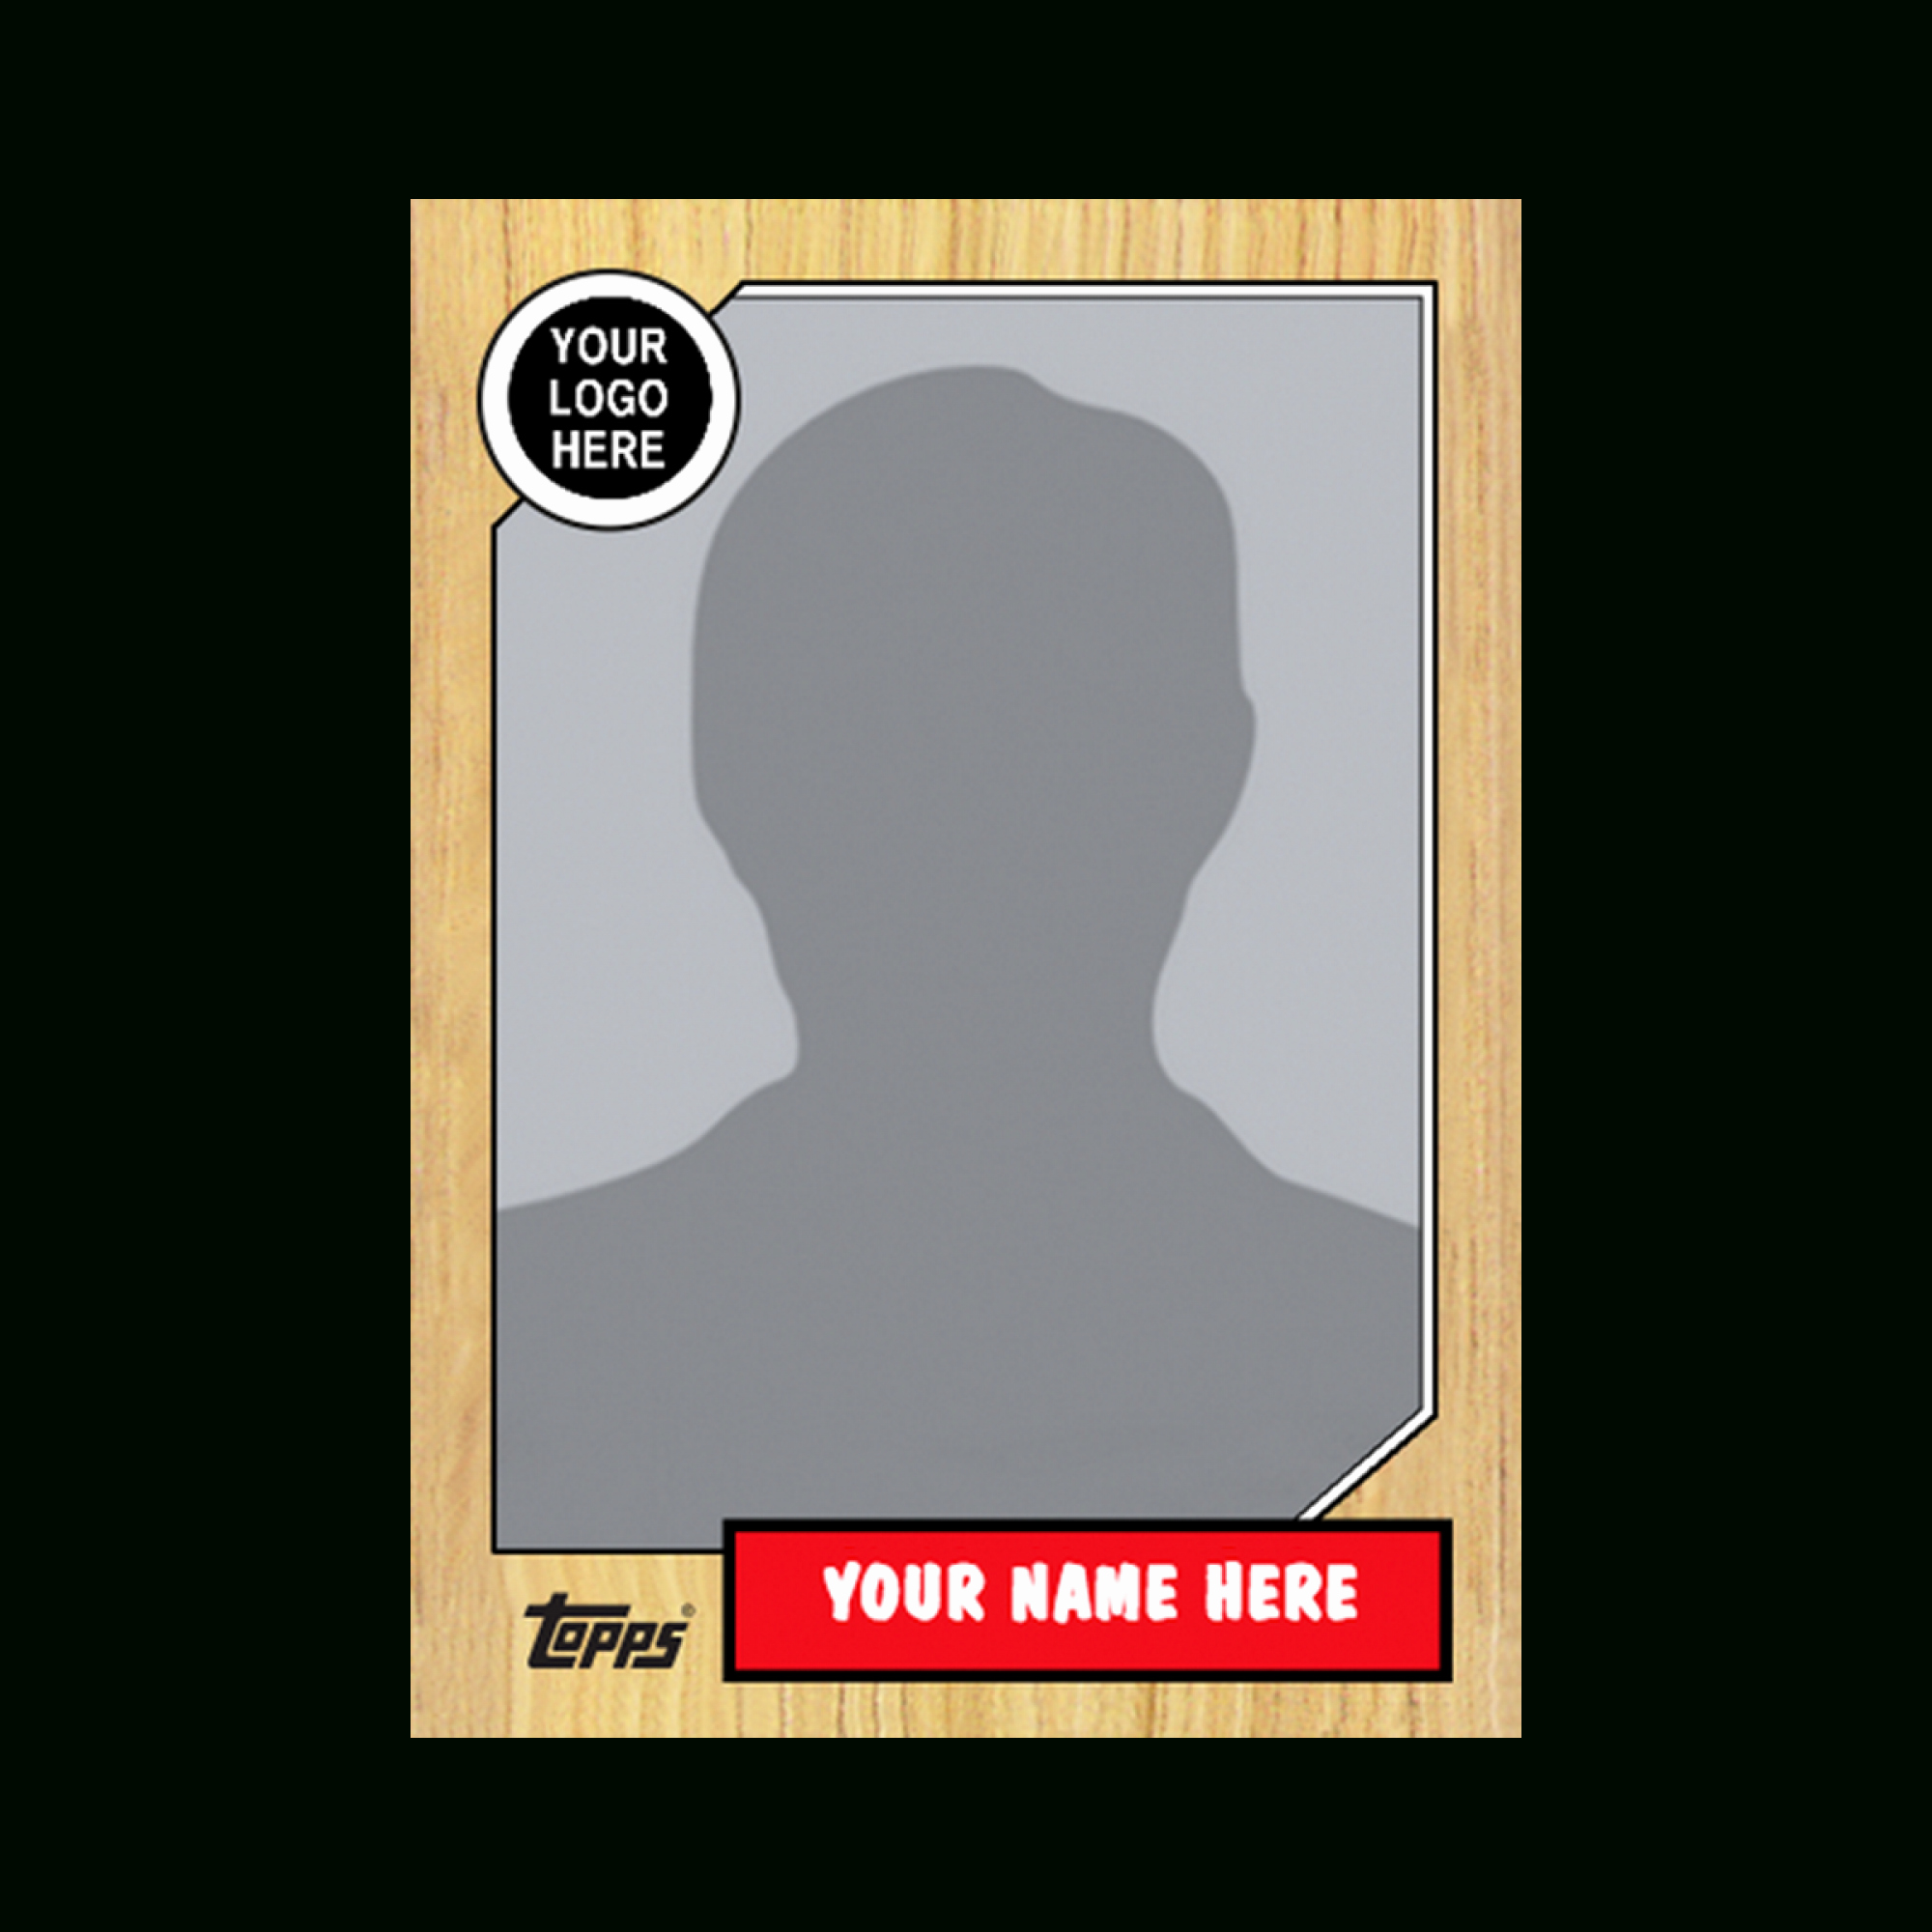 Blank Trading Card Template Lovely Baseball Card Template